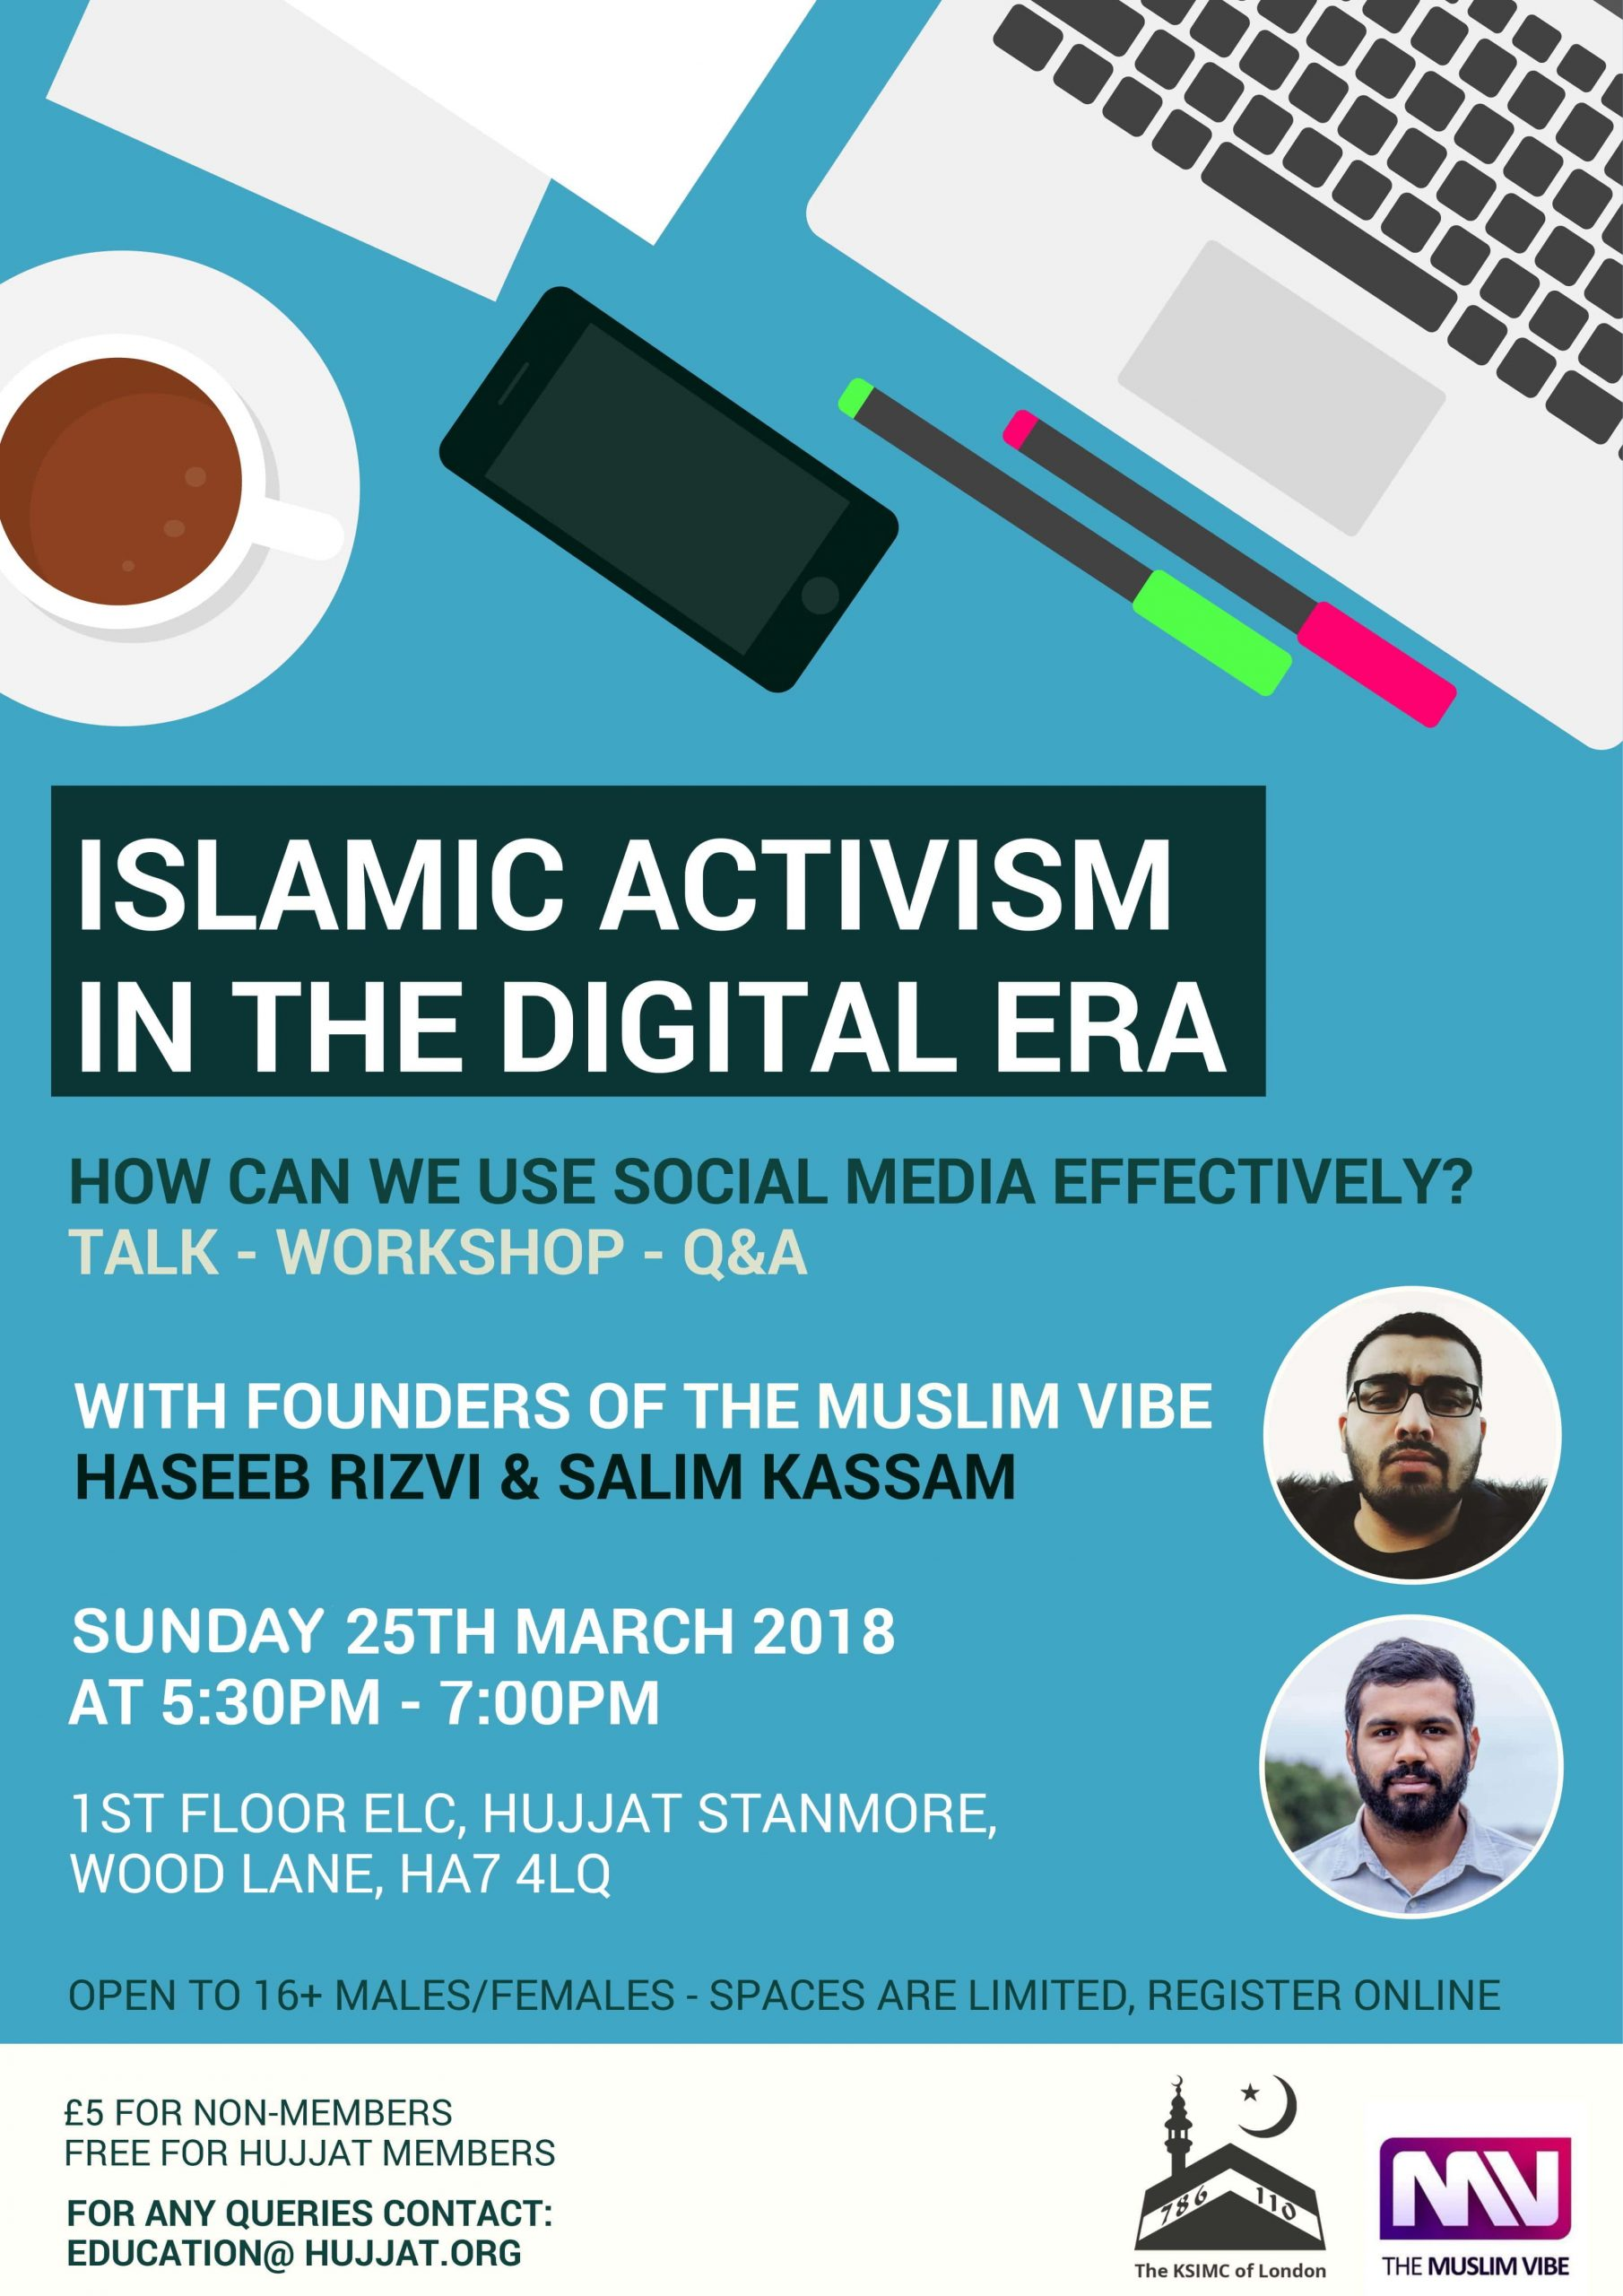 EDITED Islamic Activism Digital Era